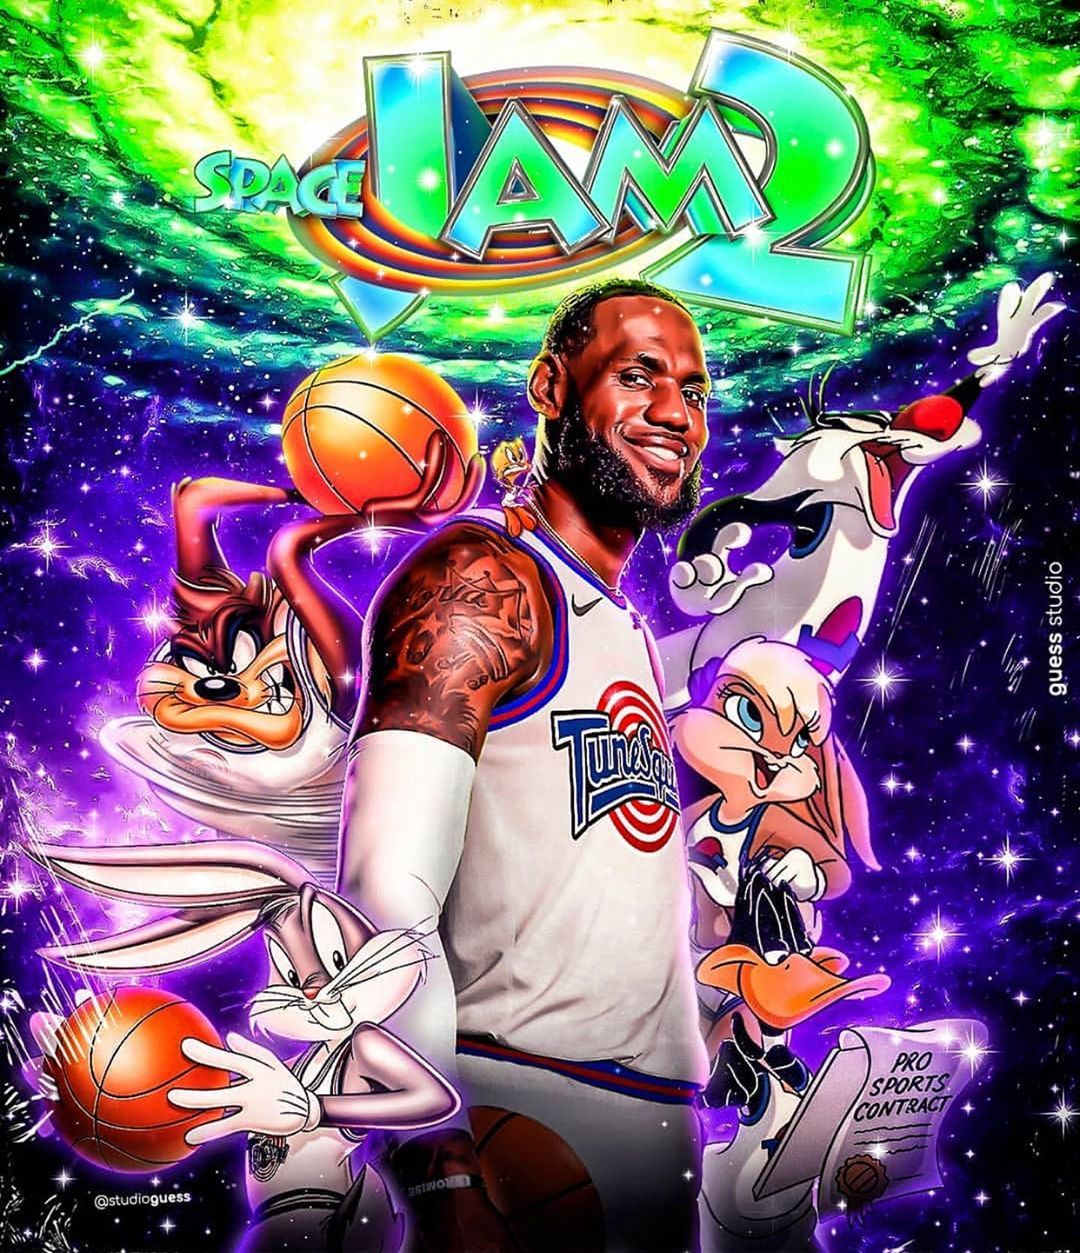 34 2 Mil Curtidas 906 Comentarios Lebron James Lebron King James No Instagram Who Will Be Watching Space Jam Lebron James Art Lebron James Space Jam